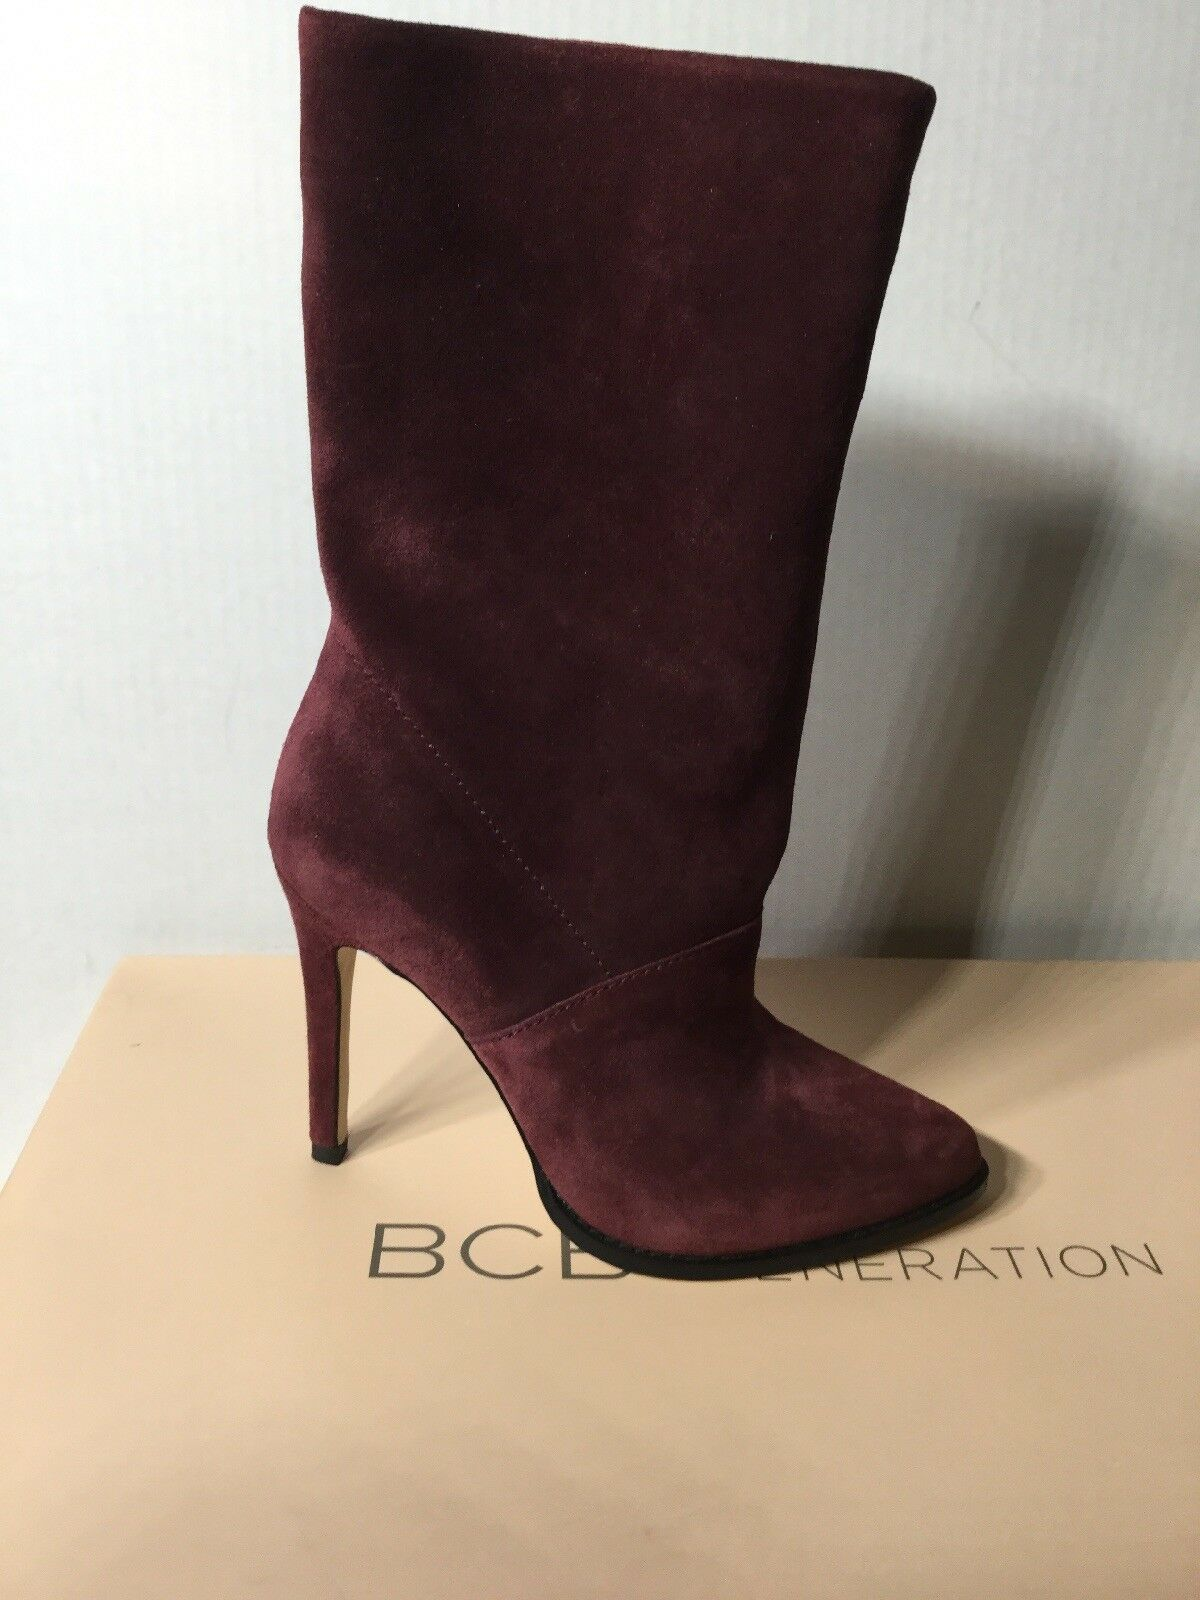 BCBGeneration Valor Suede Booties Size 5.5